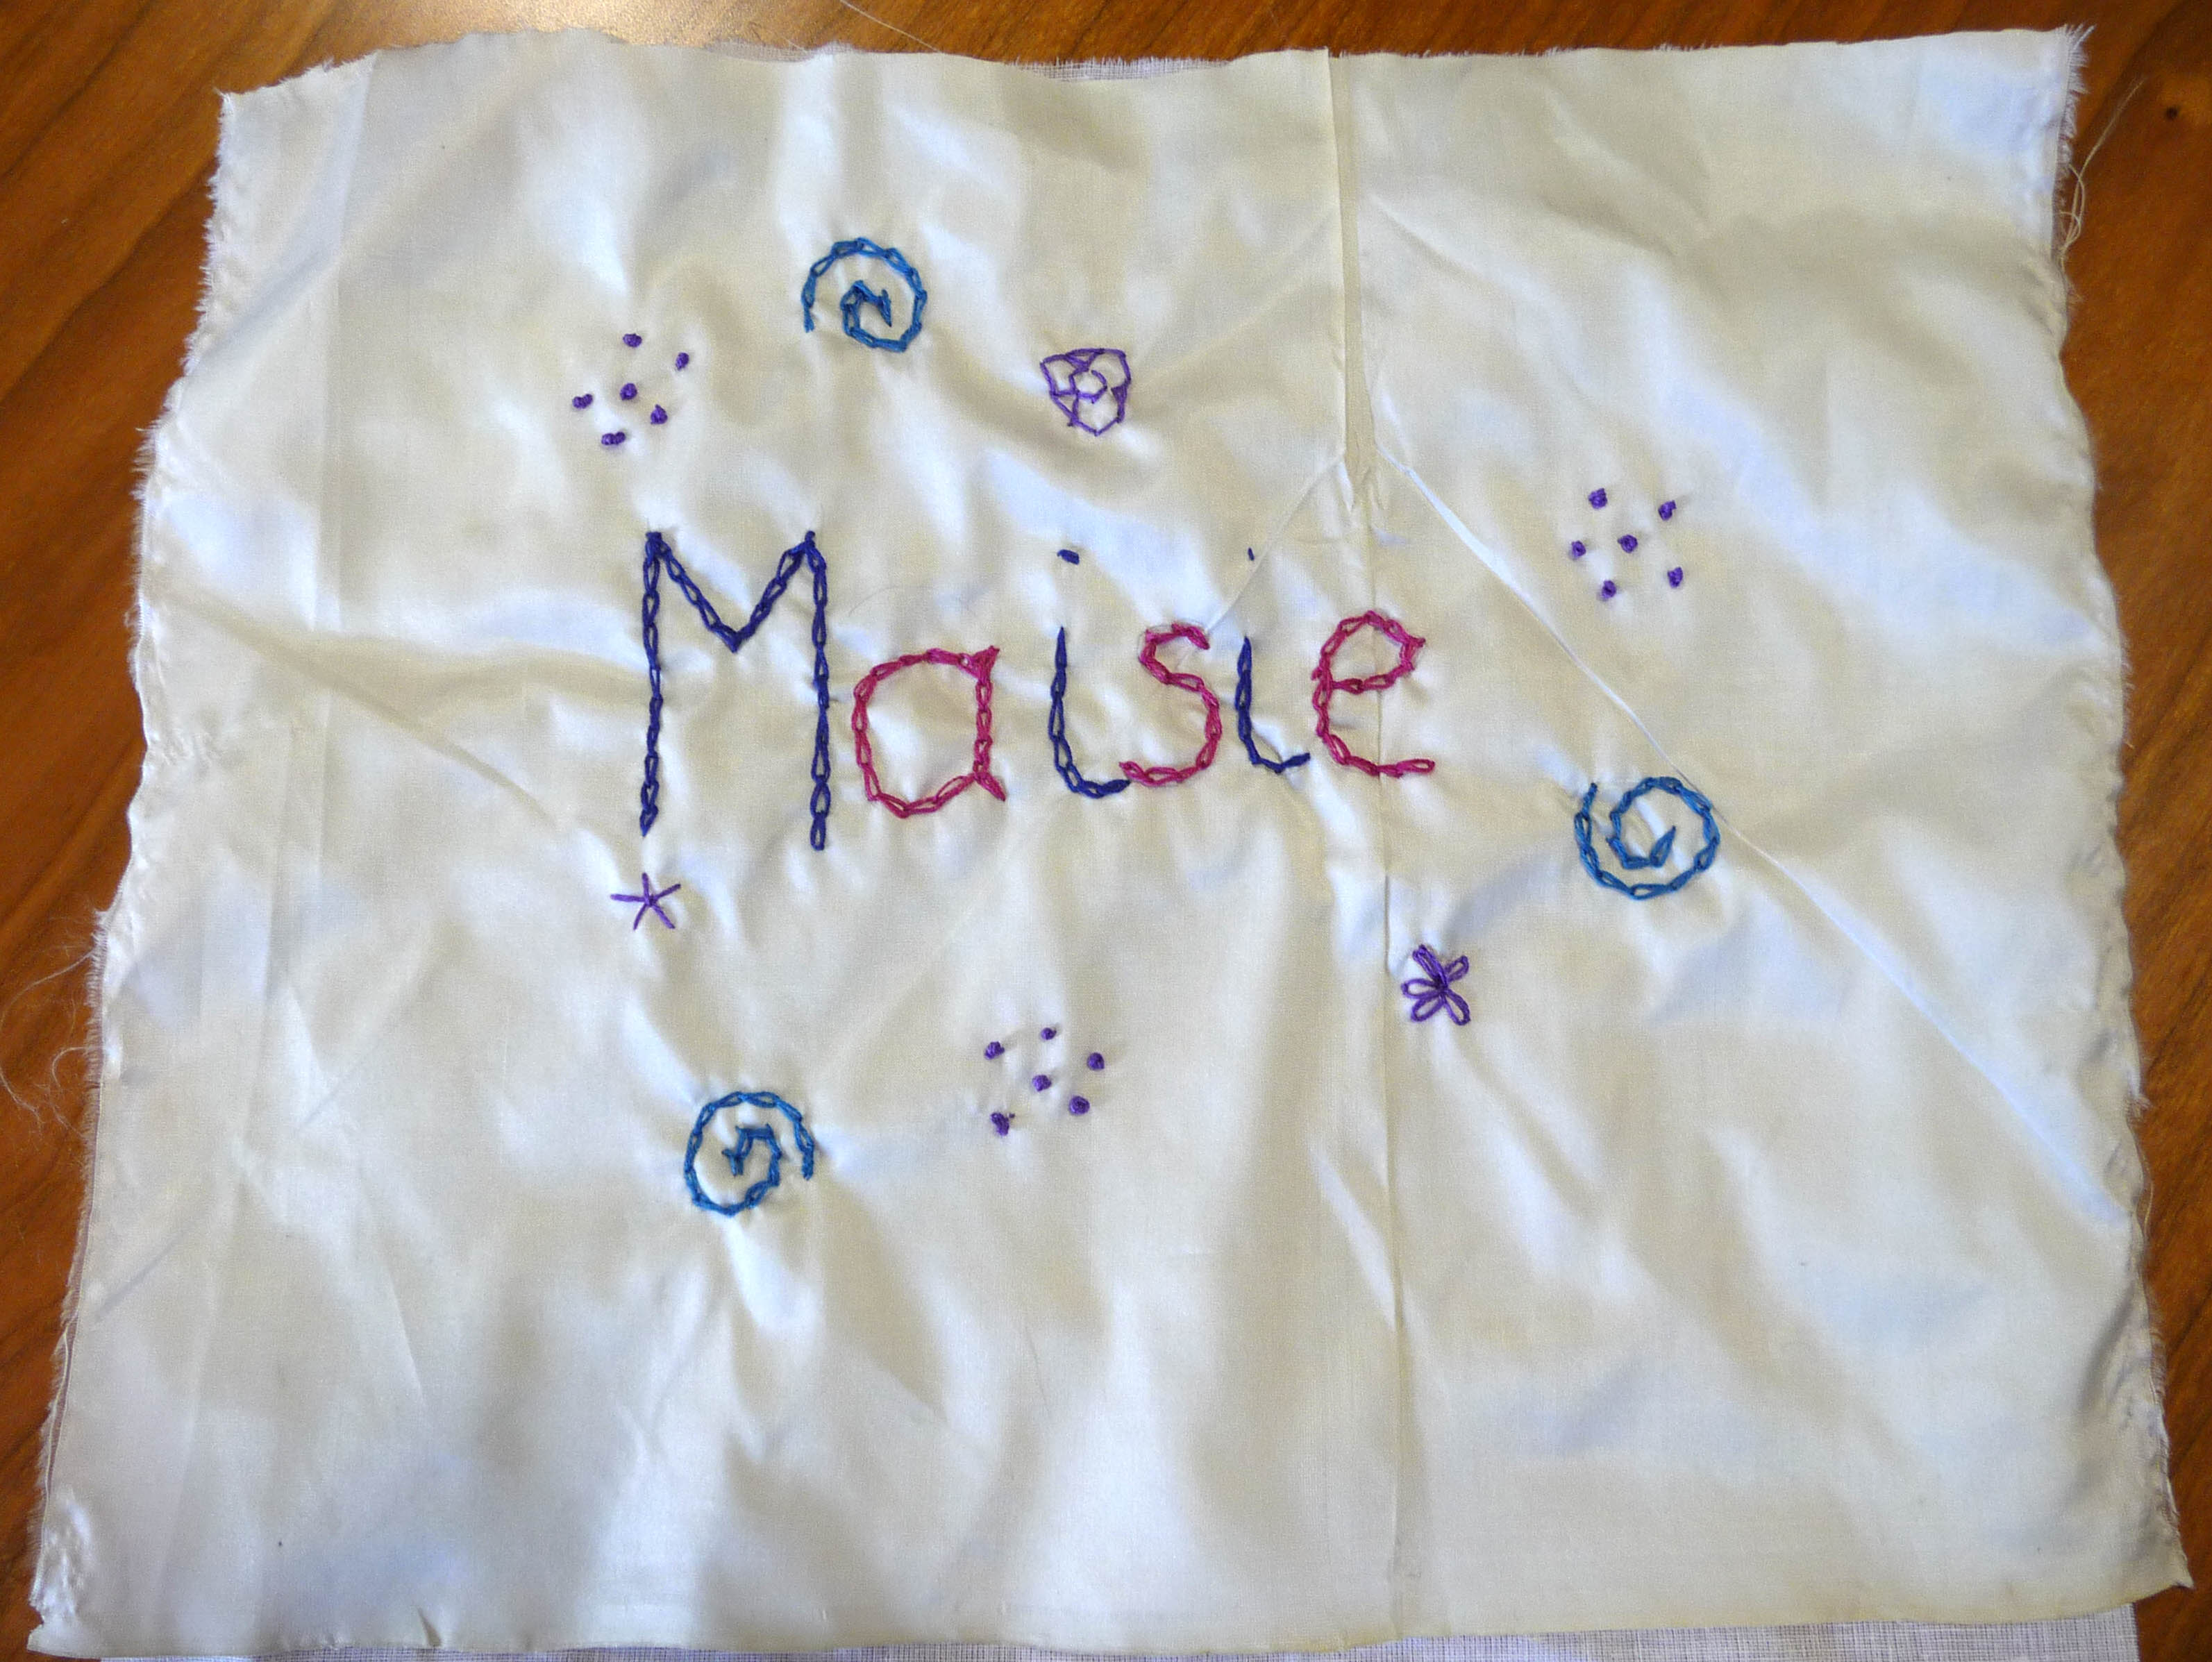 Maisie's completed square.